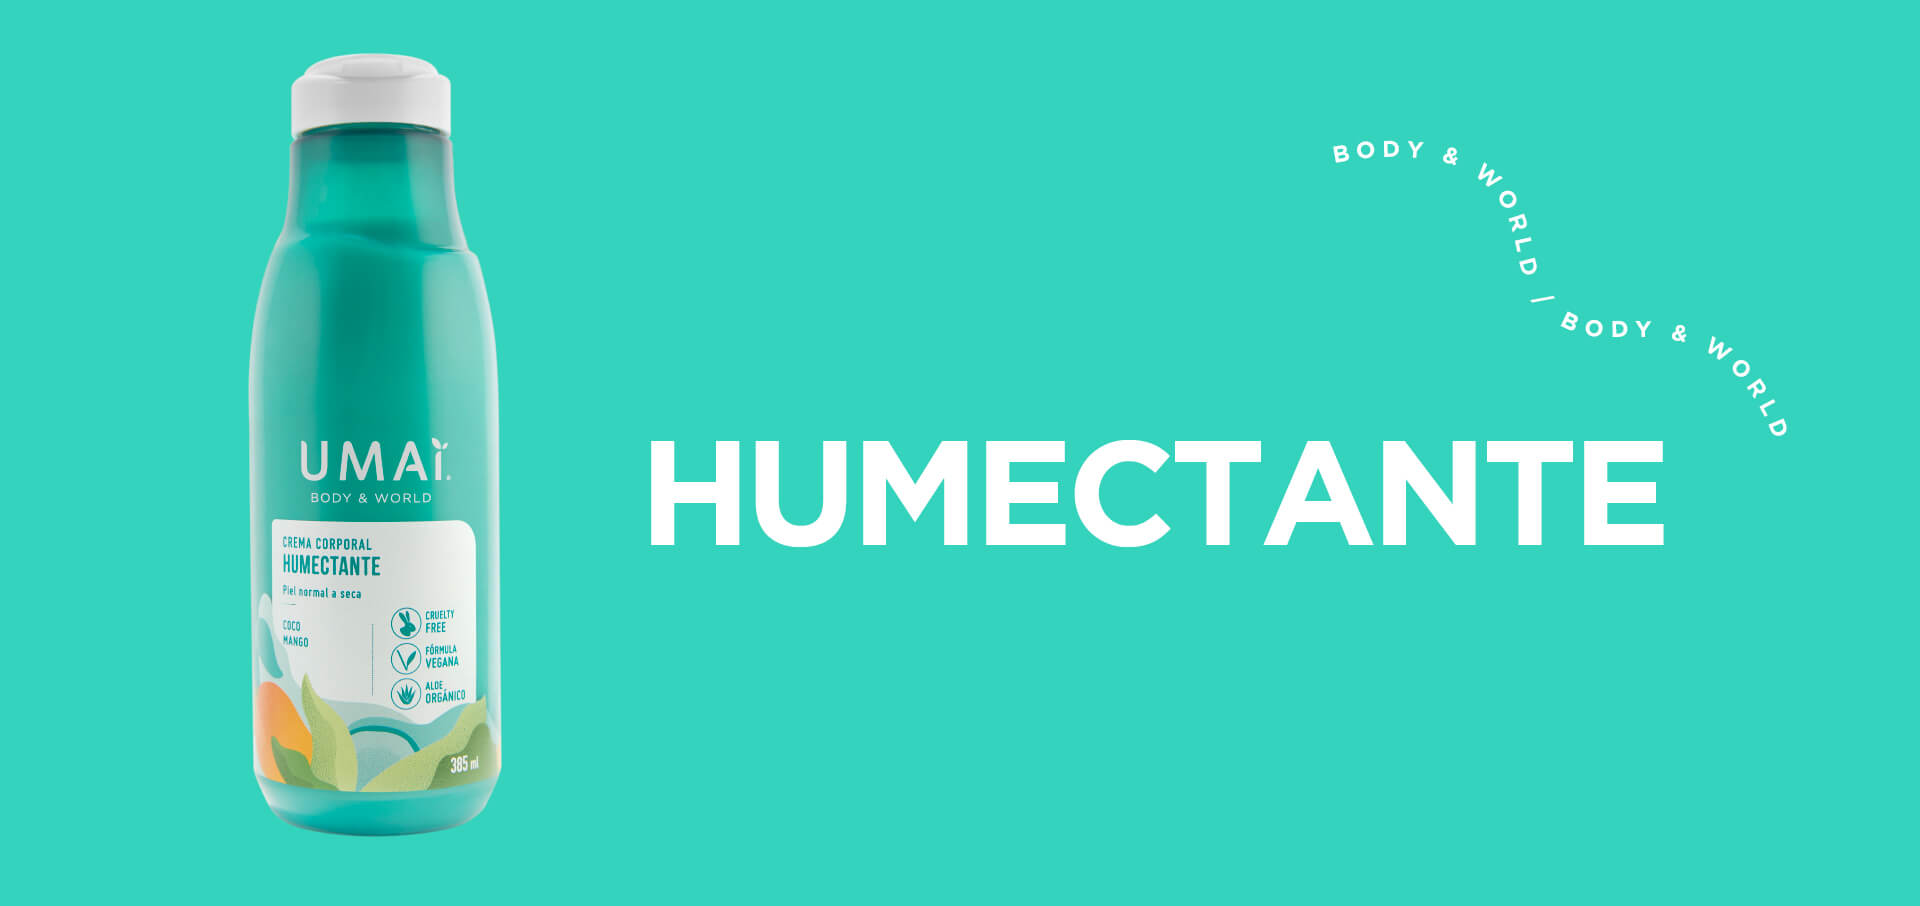 Humectante